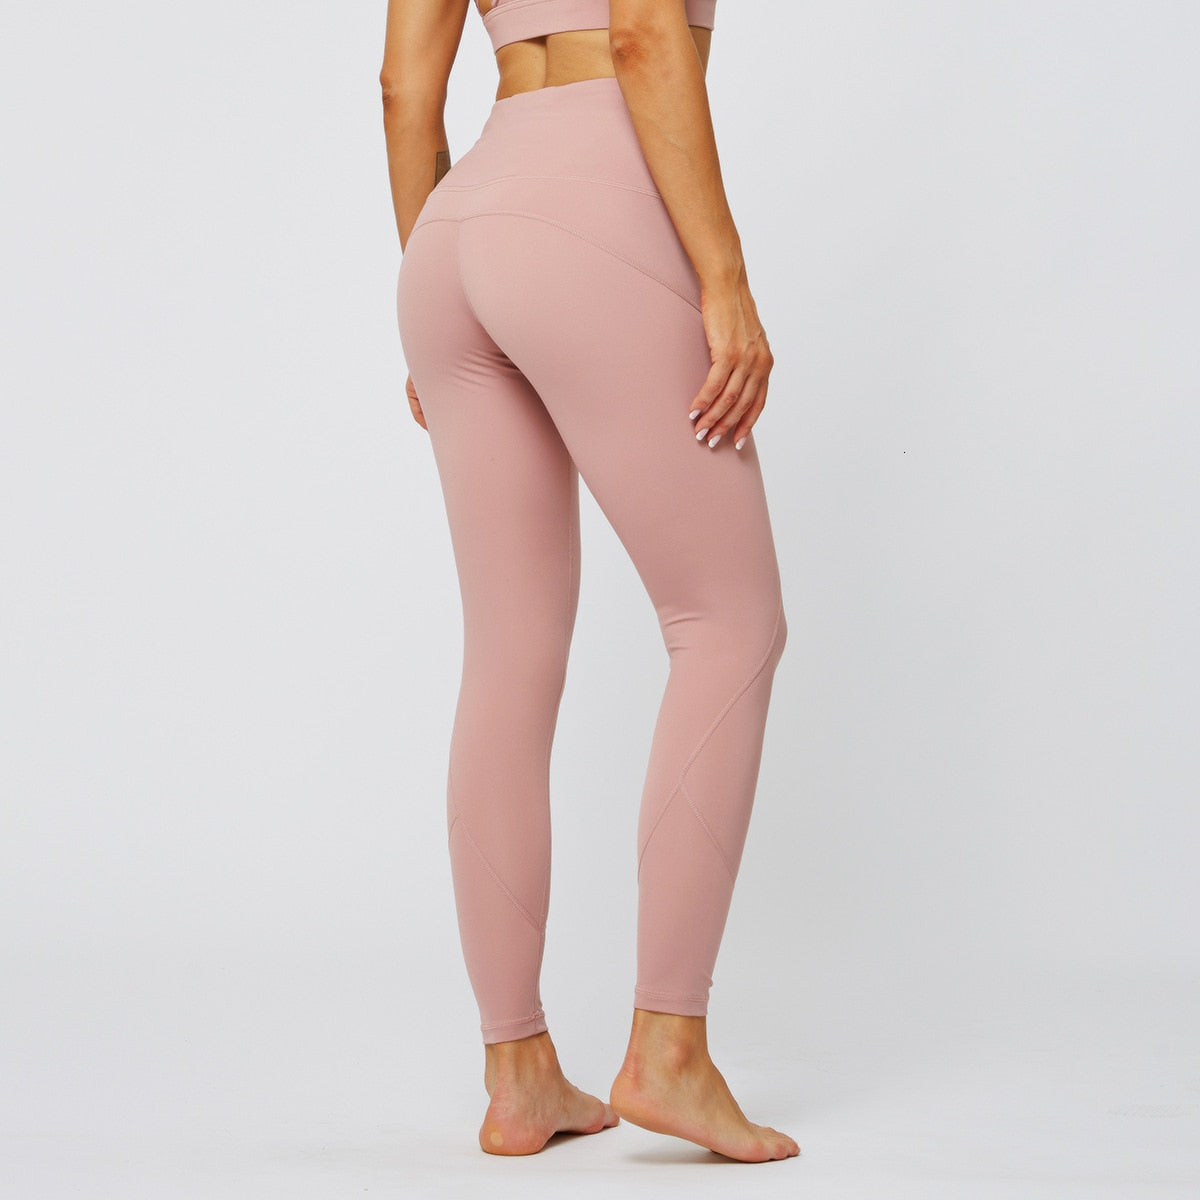 MAX Support Fitness Full Length Legging - Pink - OUTCAST DISTRICT